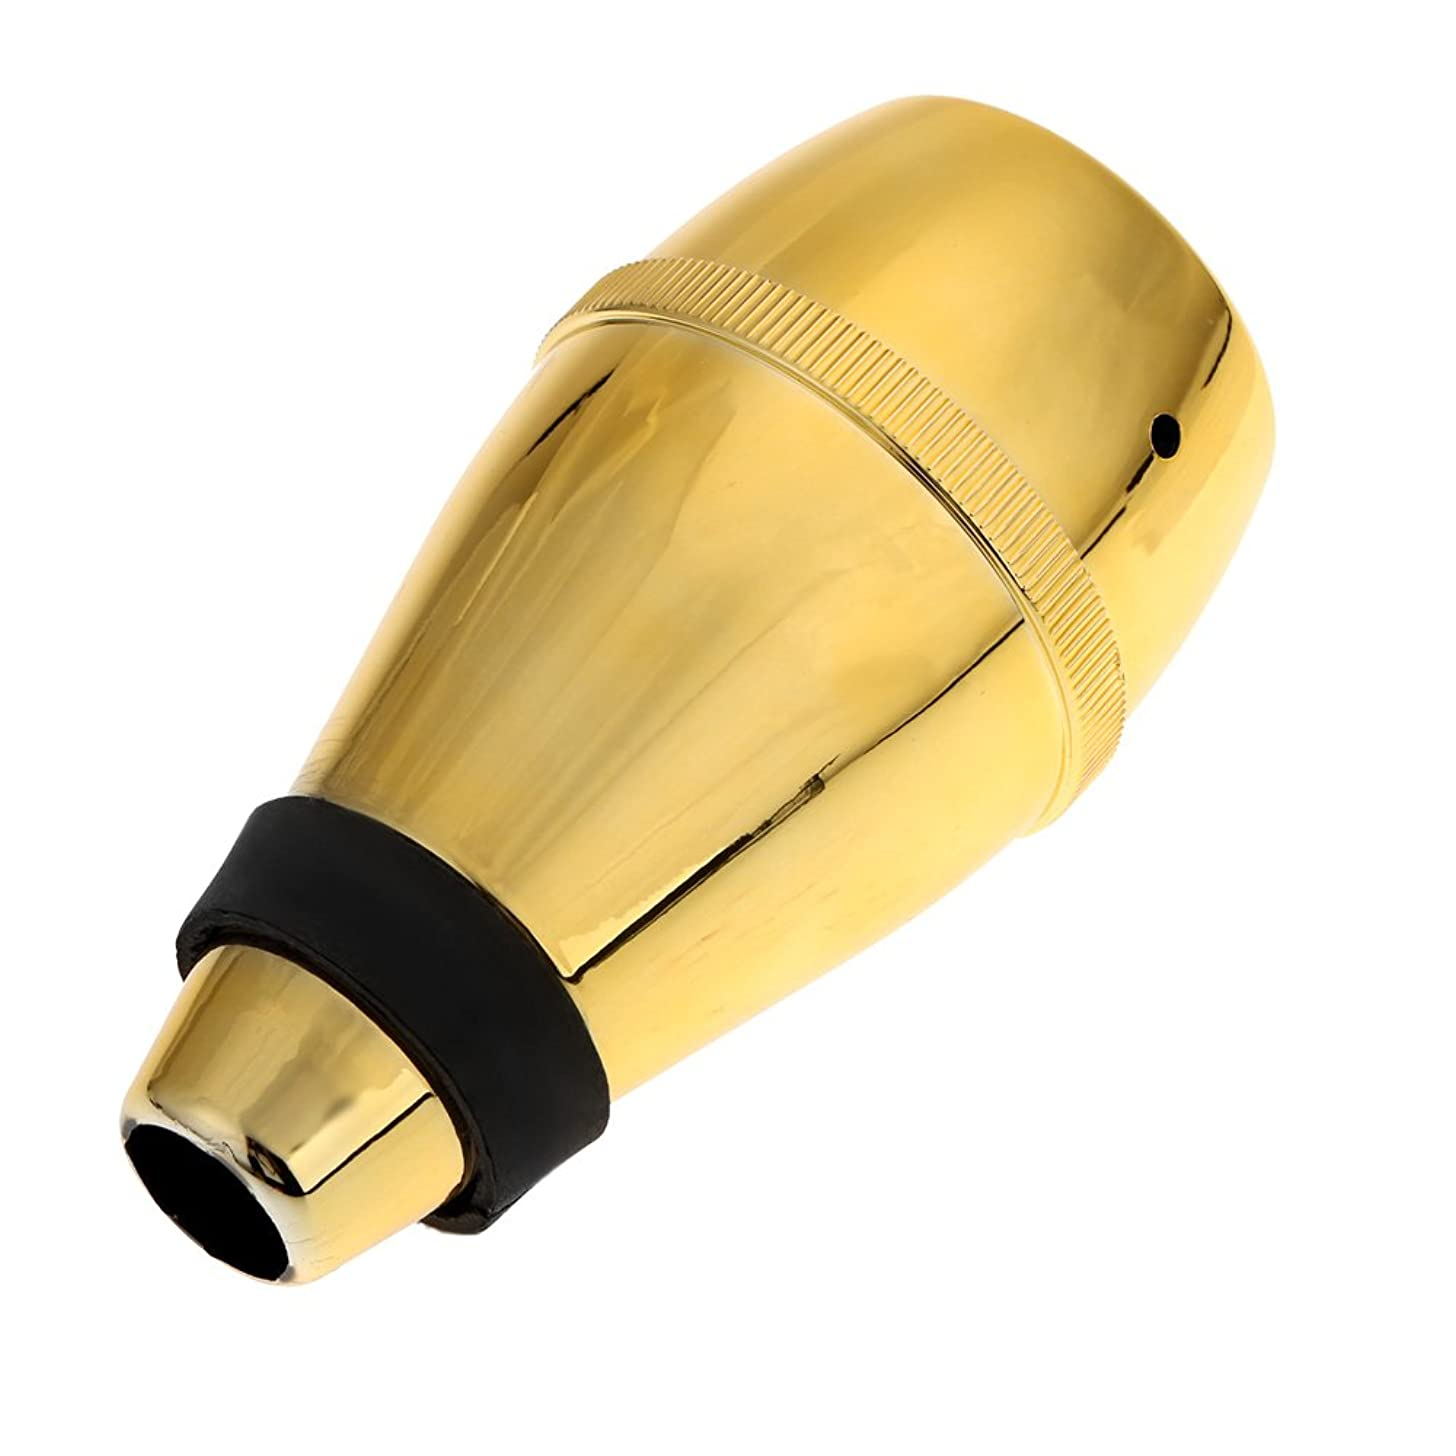 Light-weight Practice Trumpet Straight Mute Silencer Made of Good Plastic for Trumpets Instrument 2Colors Optional